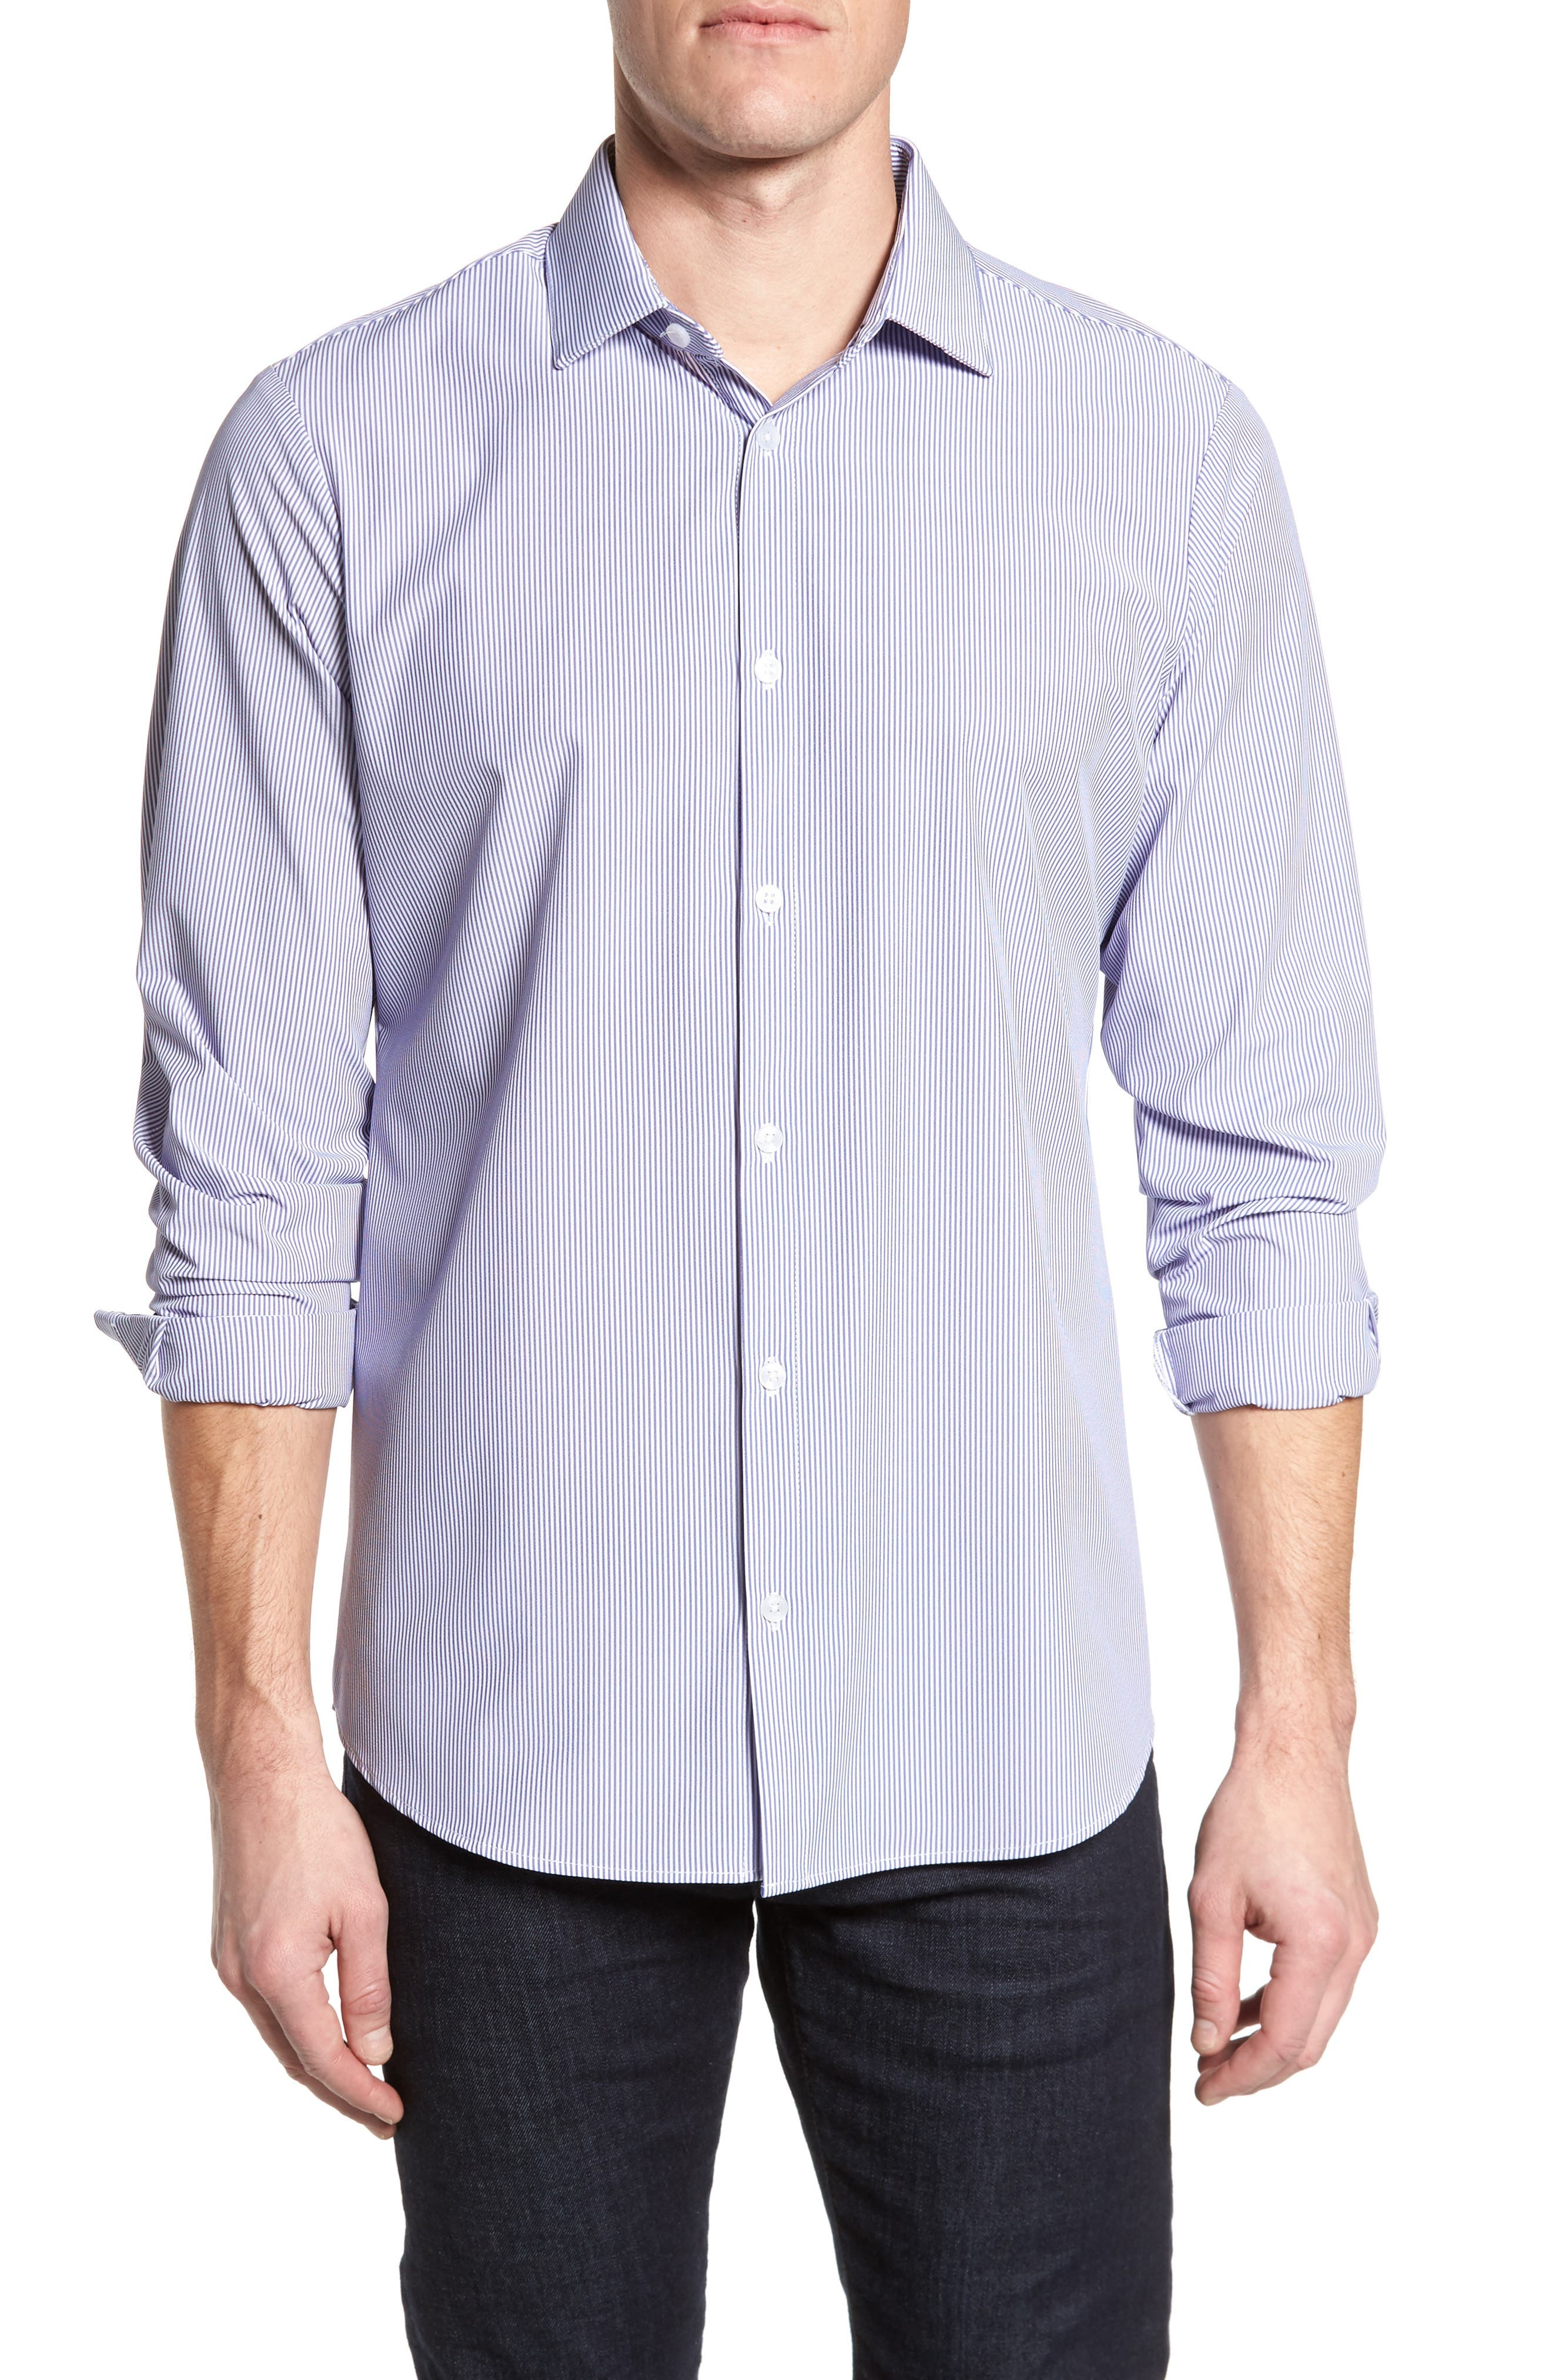 Newport Pinstripe Sport Shirt,                             Main thumbnail 1, color,